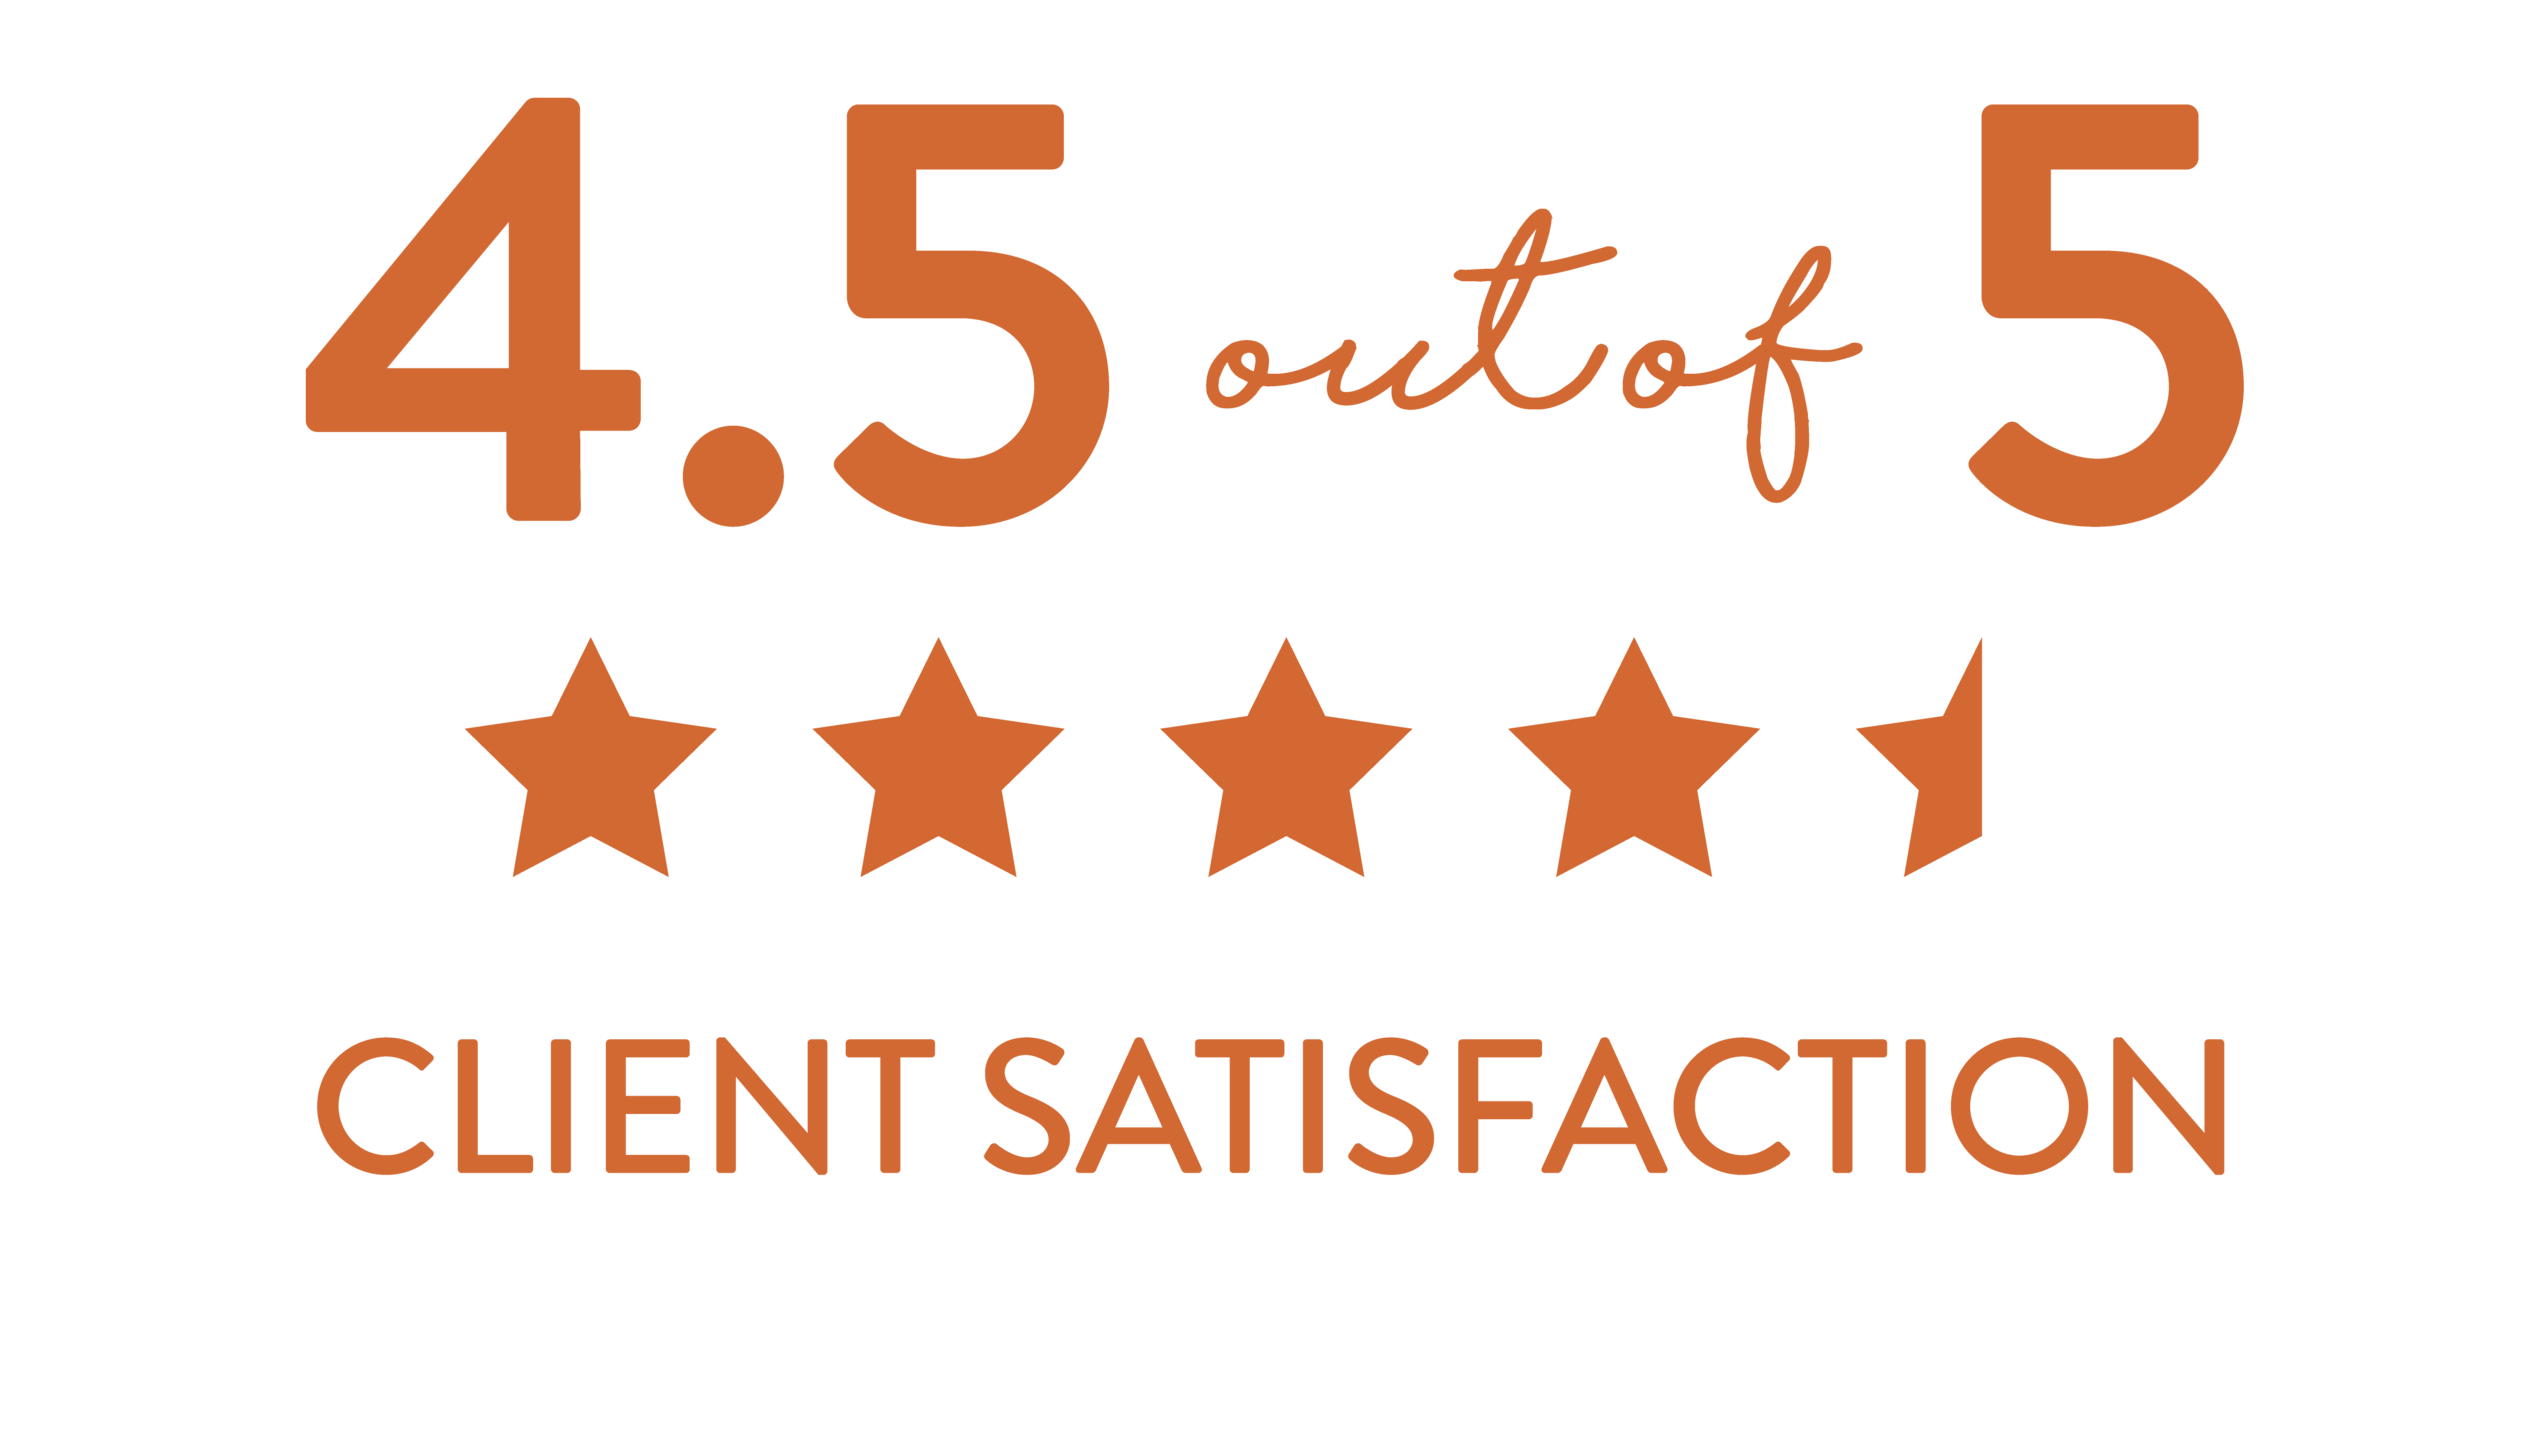 Organic Conceptions Client Satisfaction Graphic